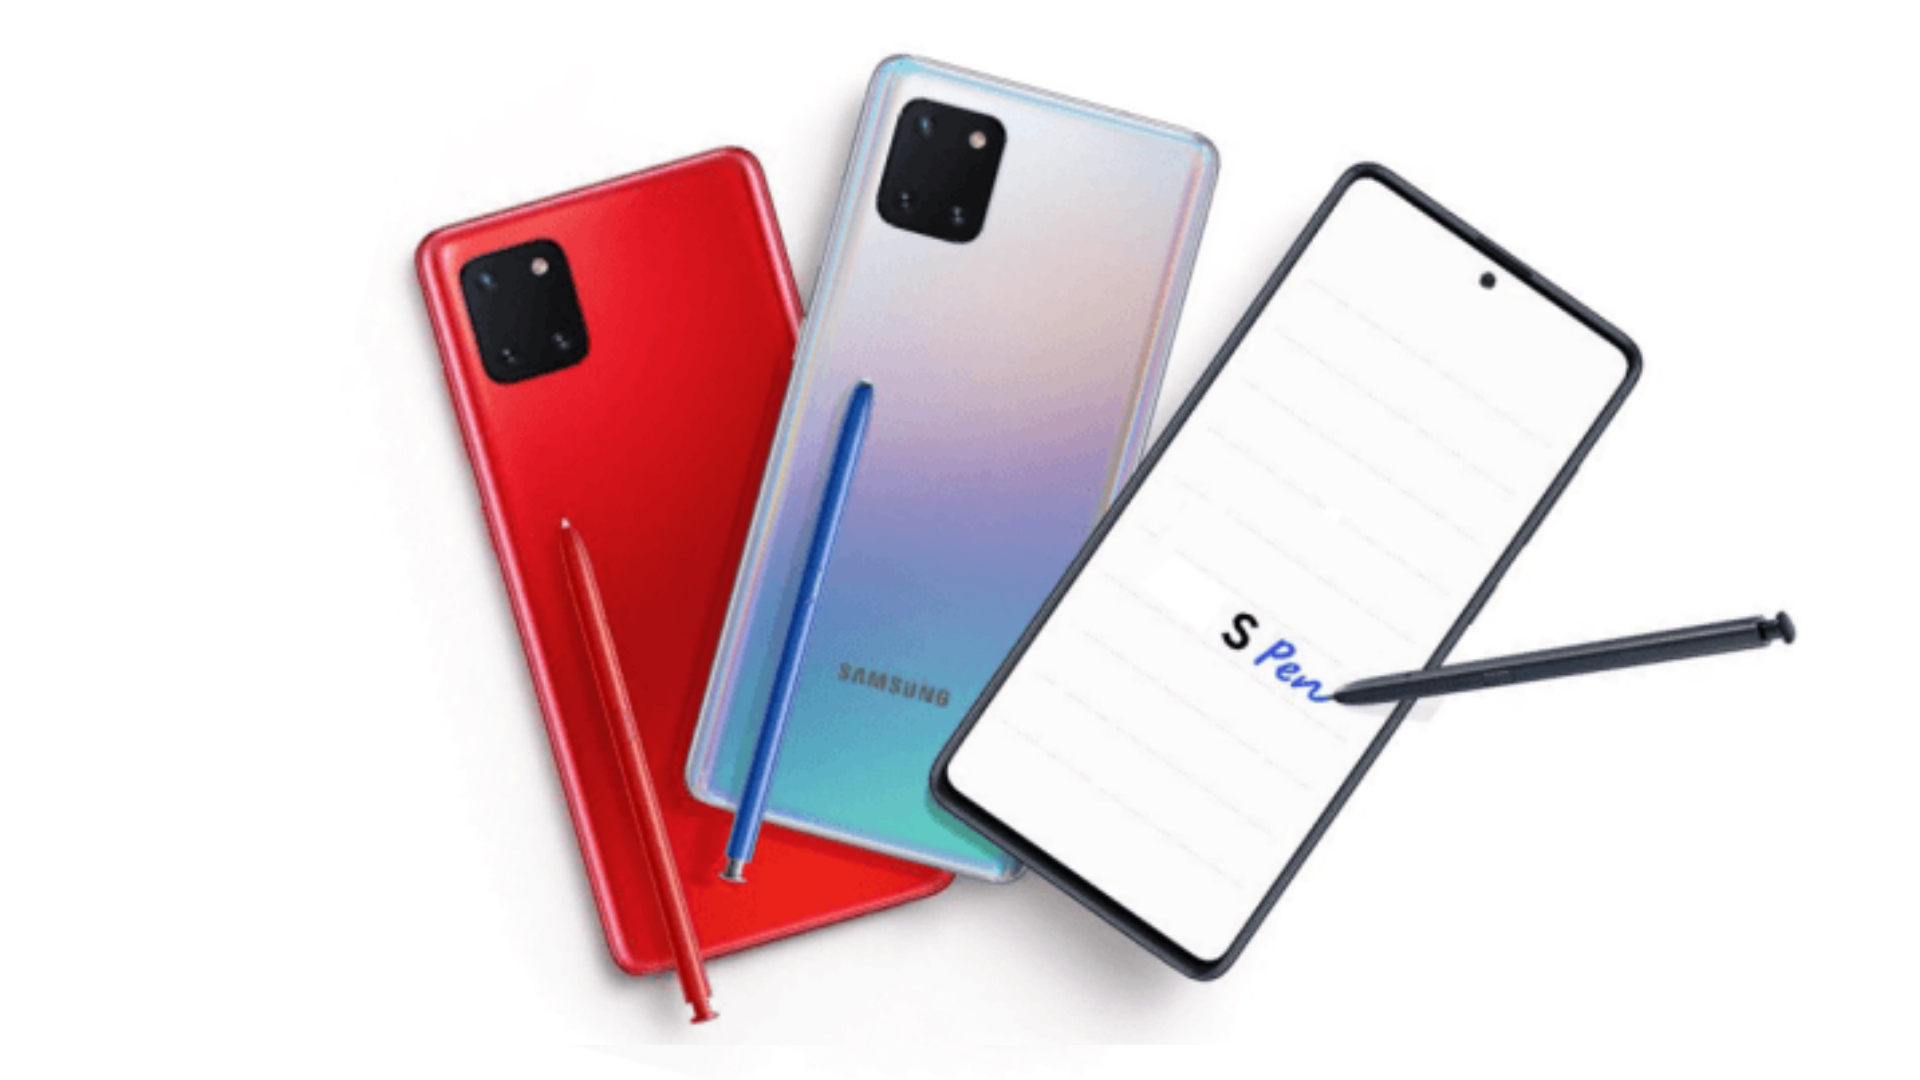 Note 10 Lite Leaked Pictures Reveals More Details of The Device